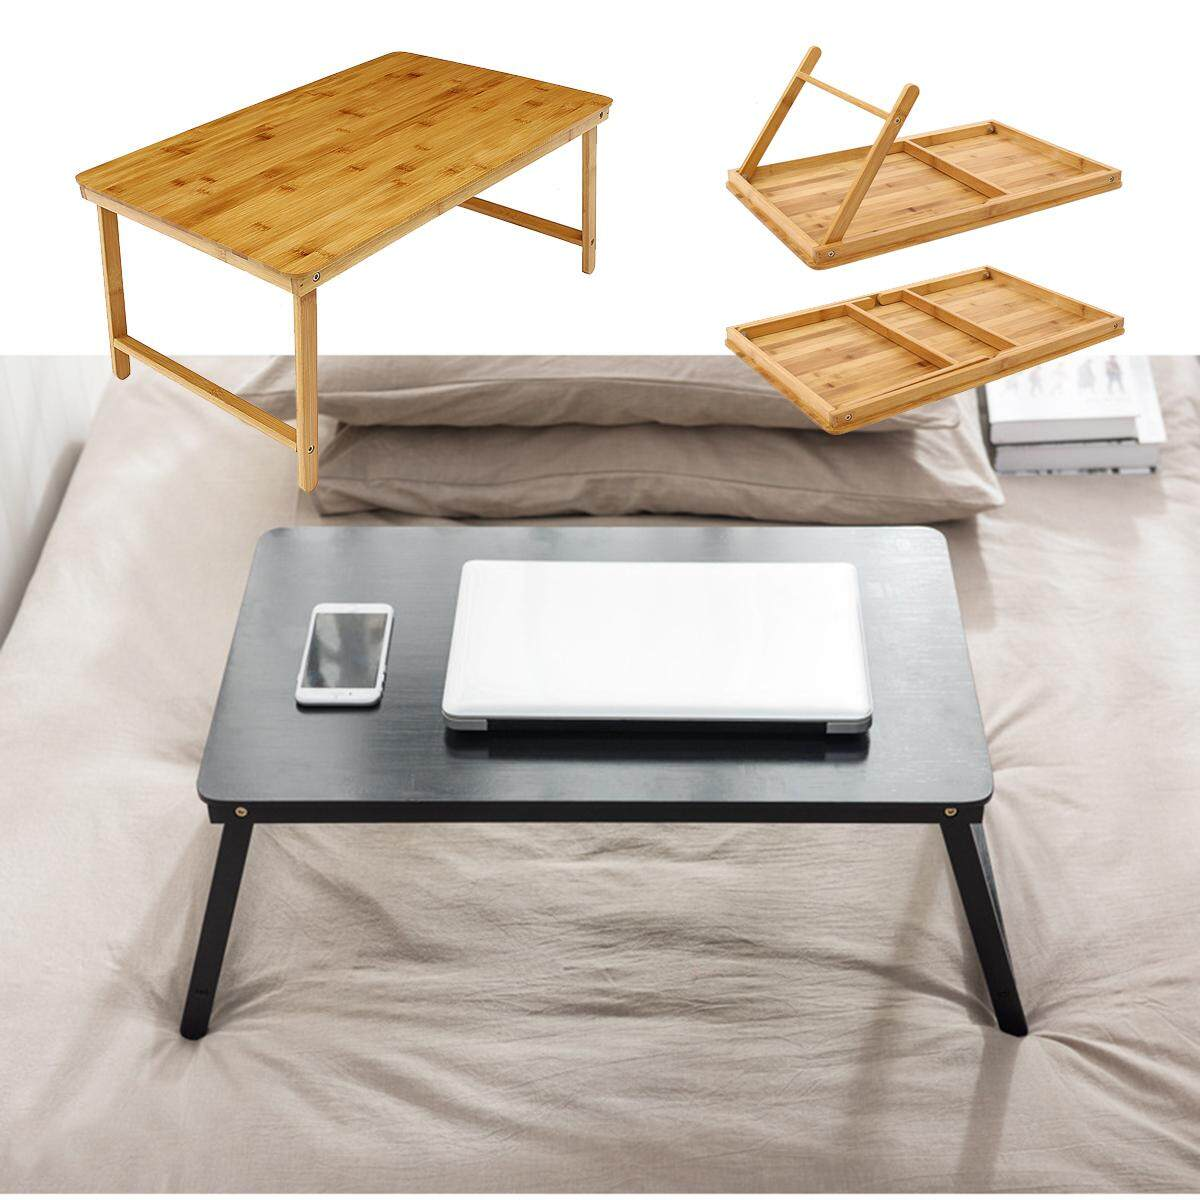 Portable Folding Lap Desk Bamboo Laptop Coffee Tea Tray Natural Bed Table Stand